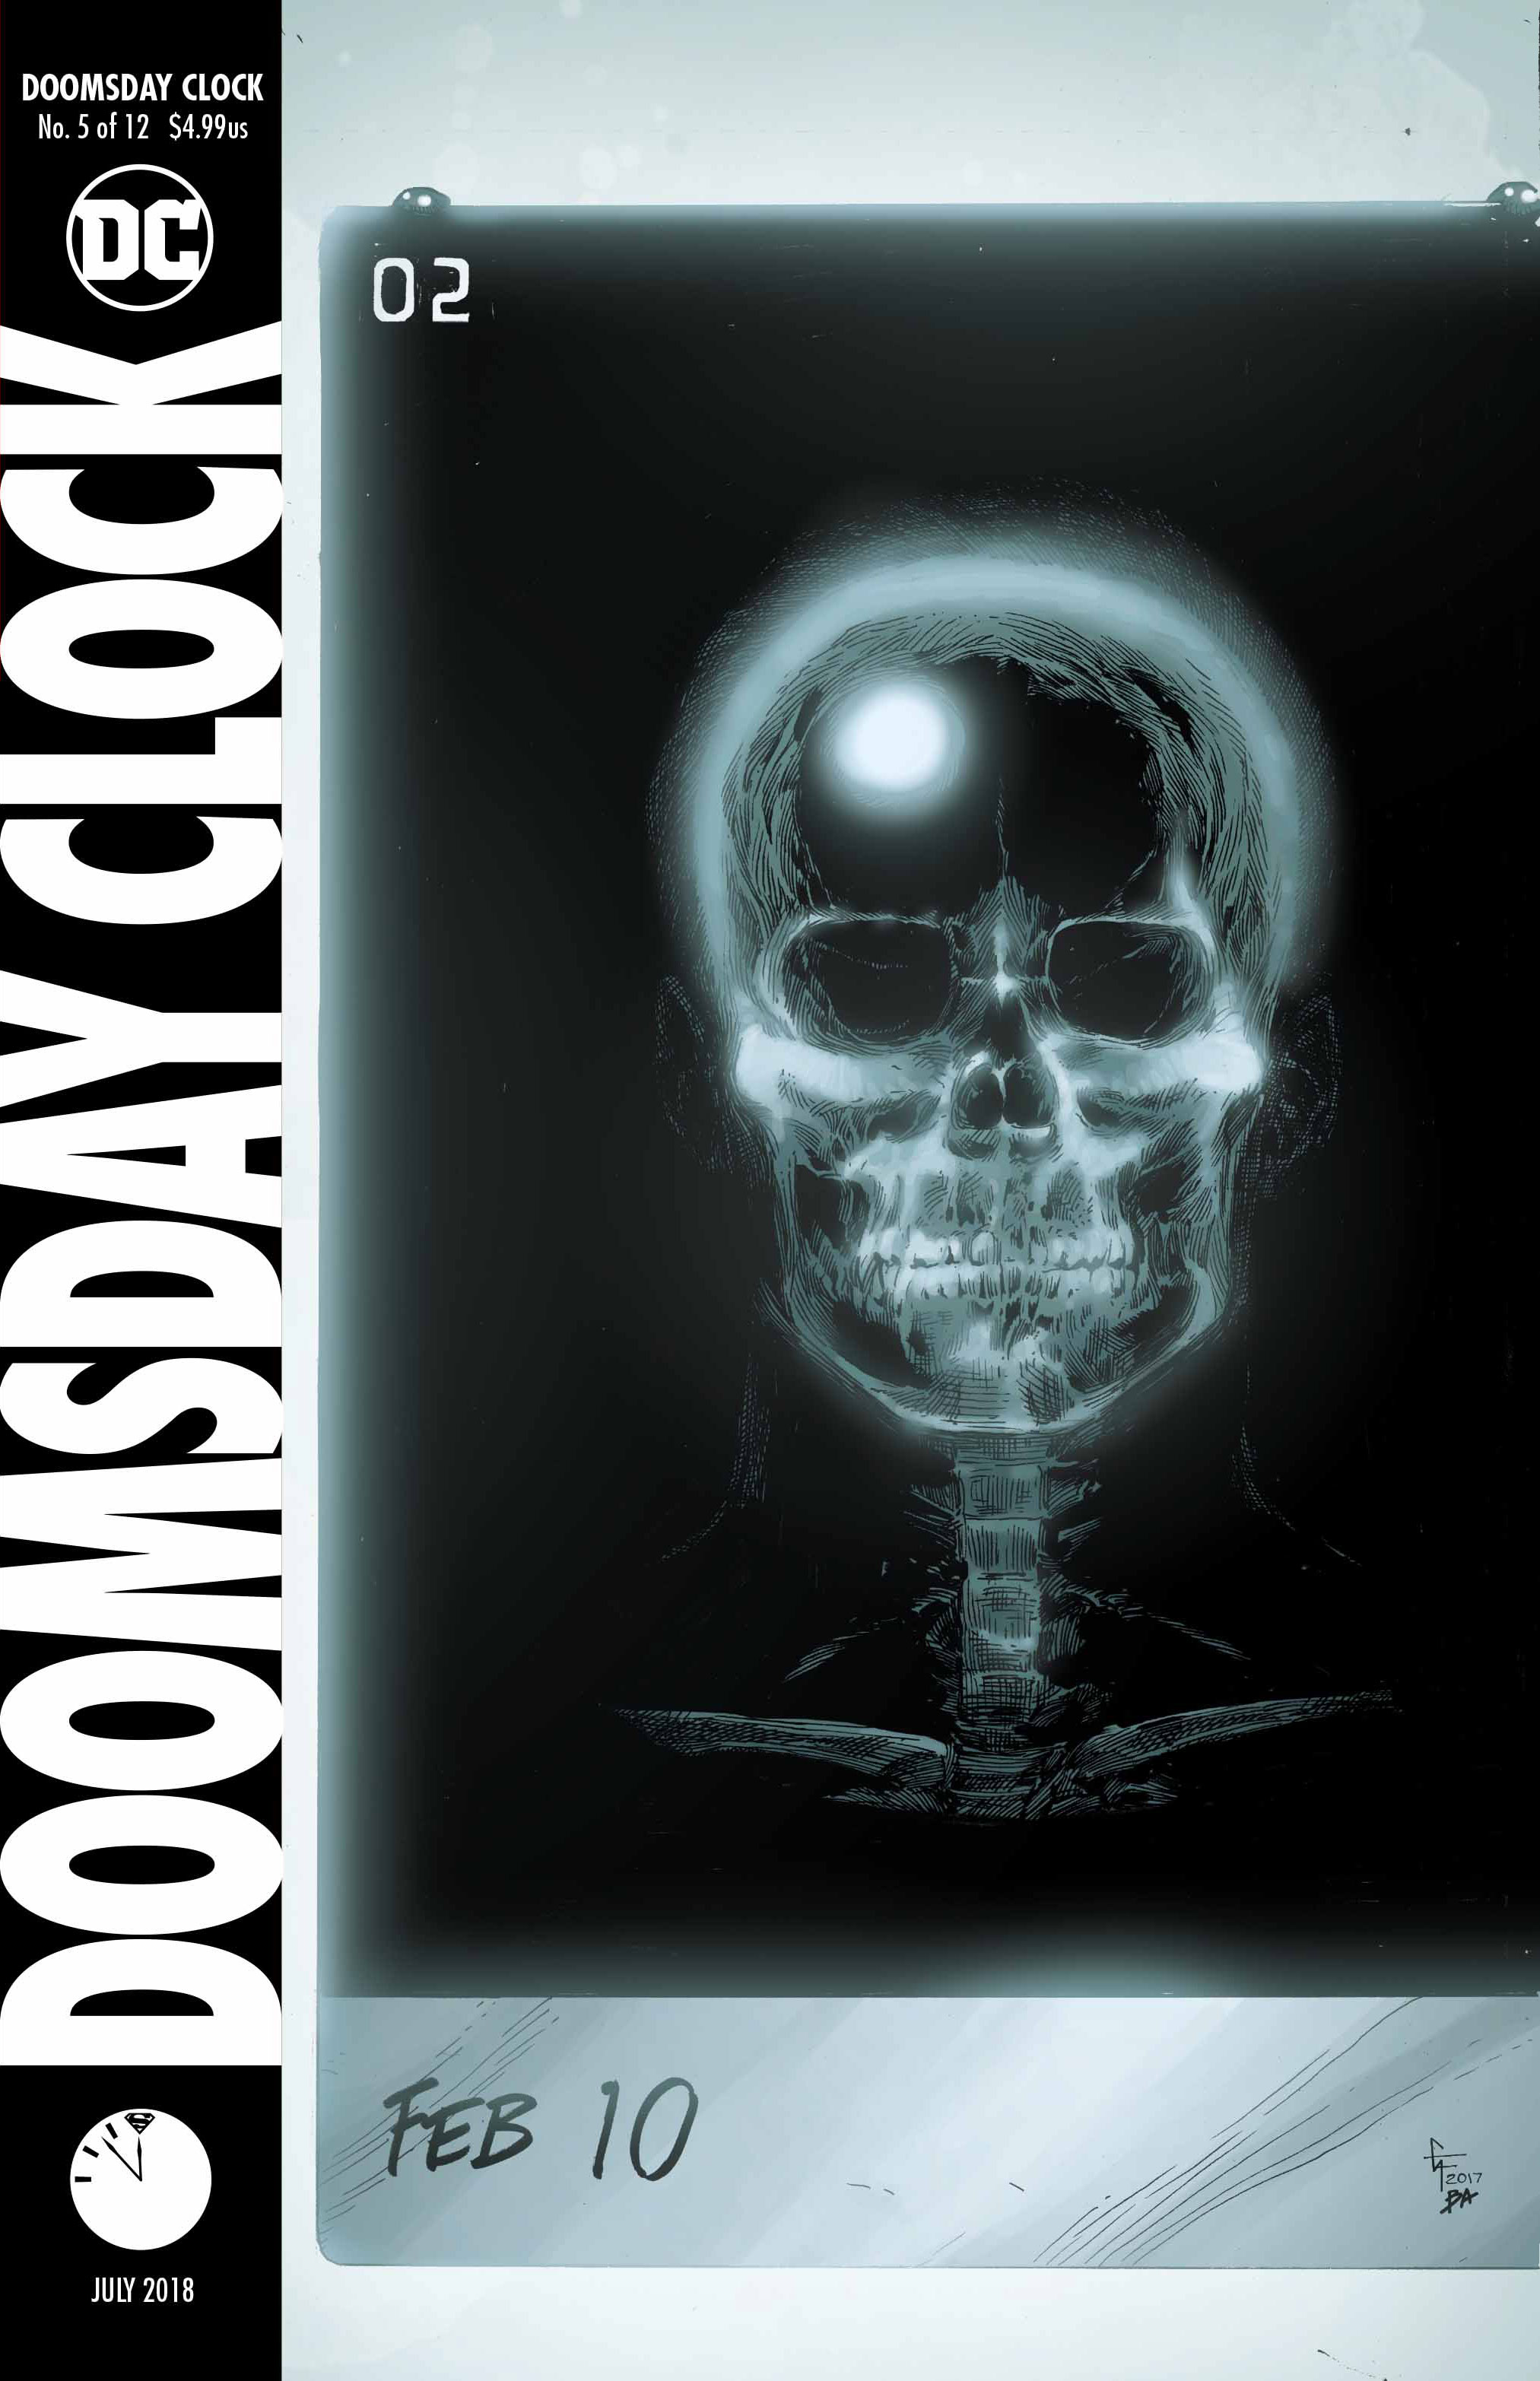 Doomsday Clock #5 Cover - DC Comics